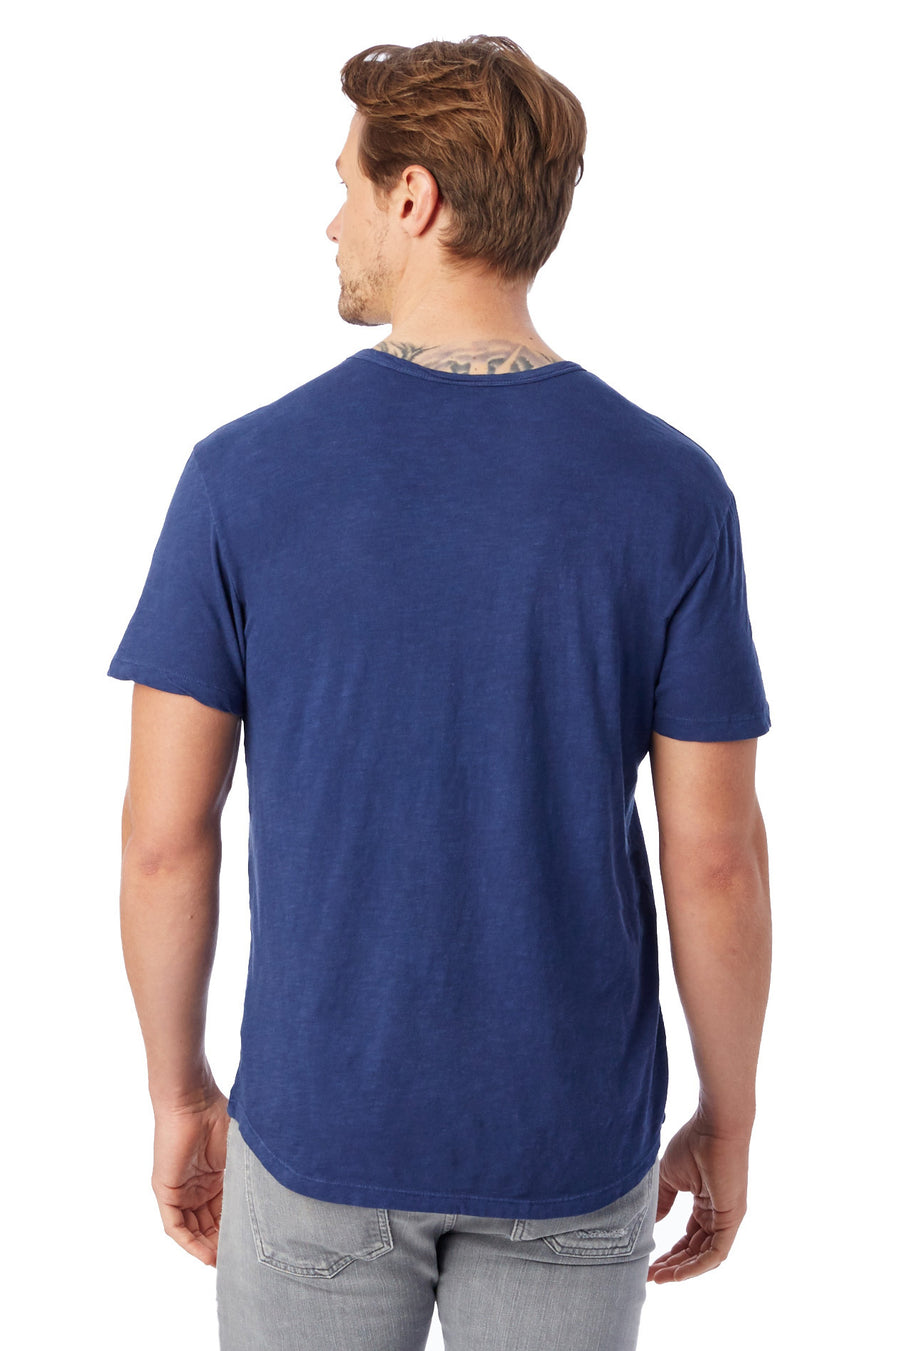 Postgame Washed Slub Crew T-Shirt - Midnight - Pavilion